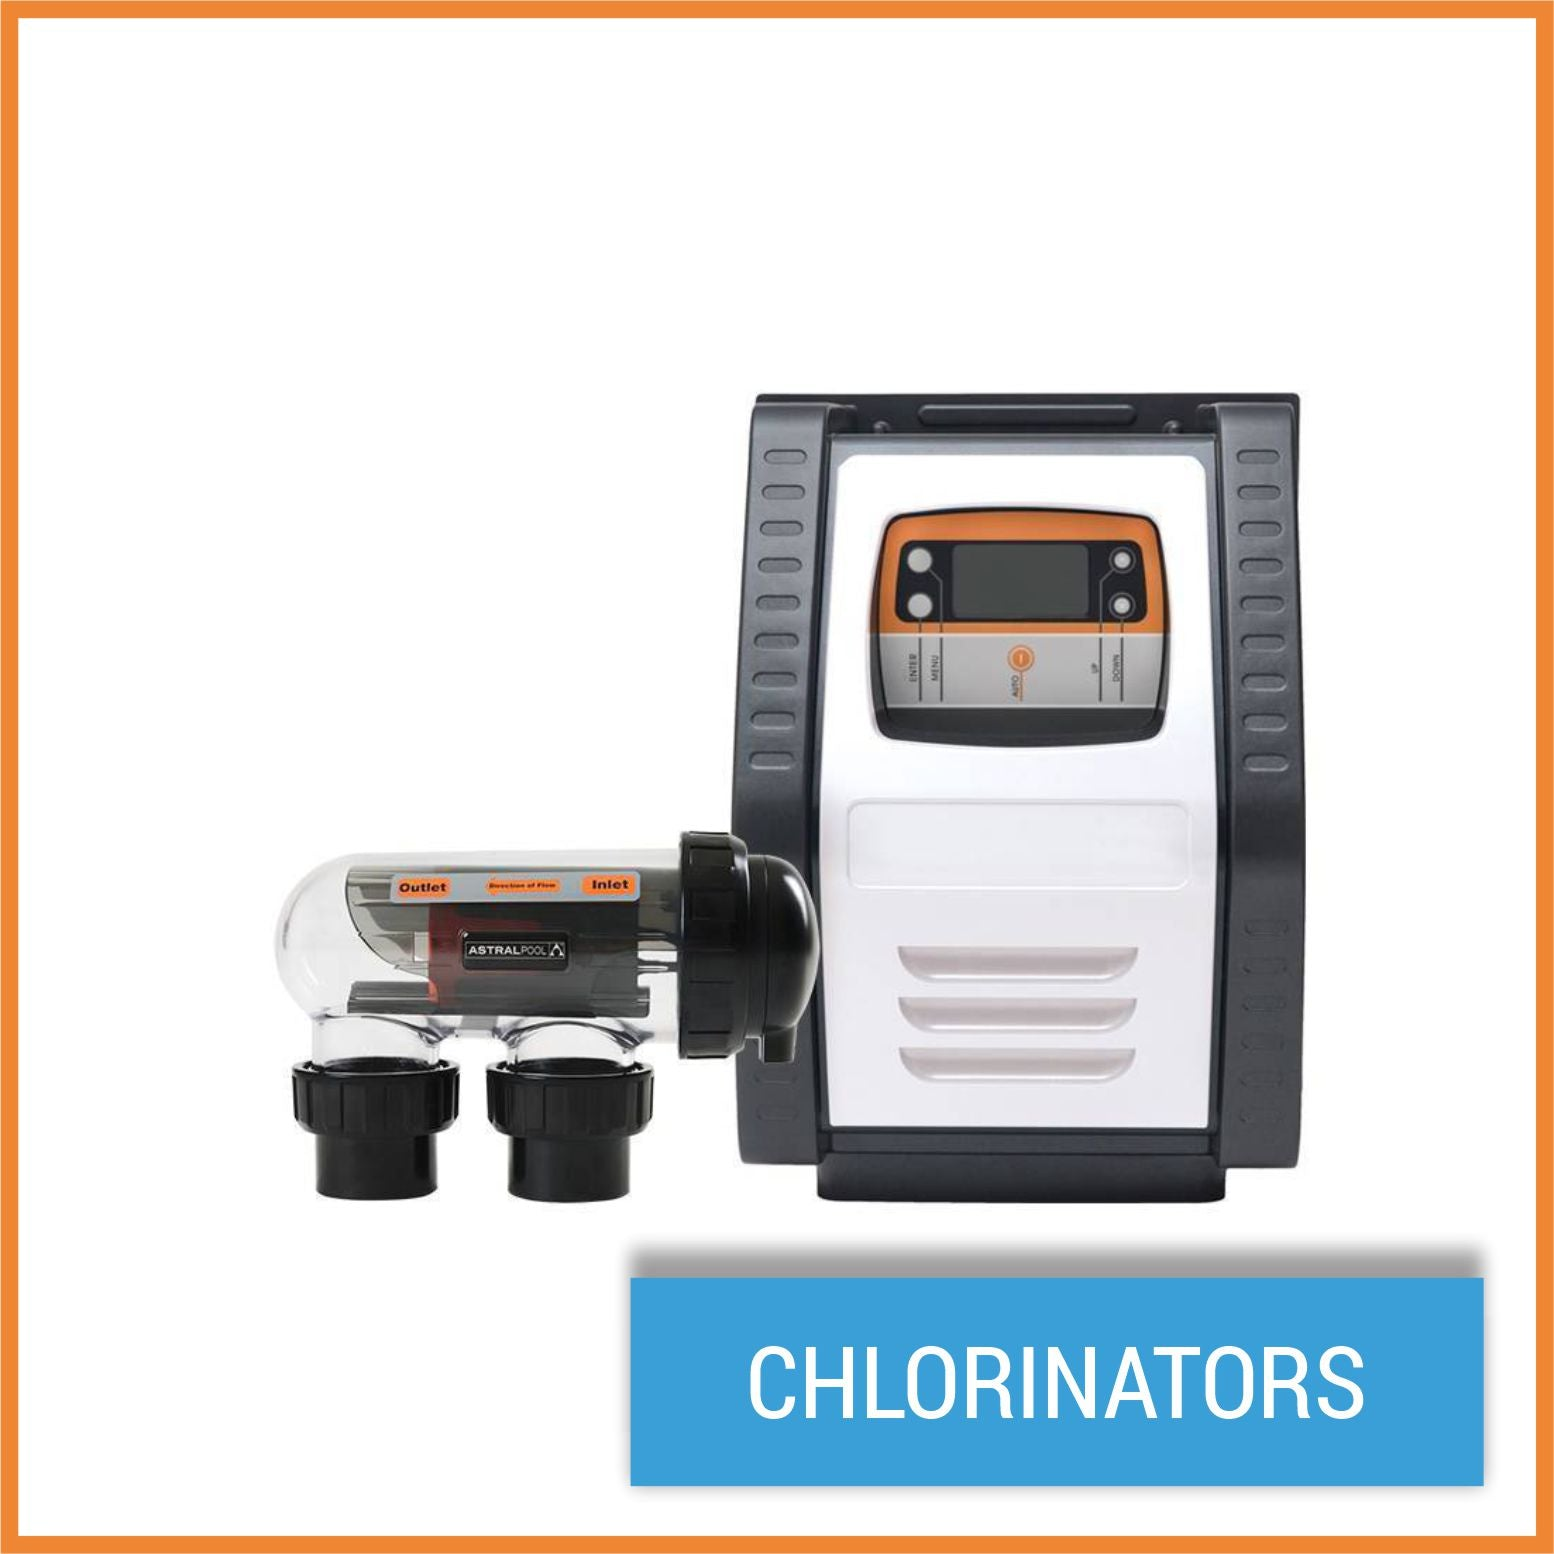 How do I tell if I need a new Salt Chlorinator?